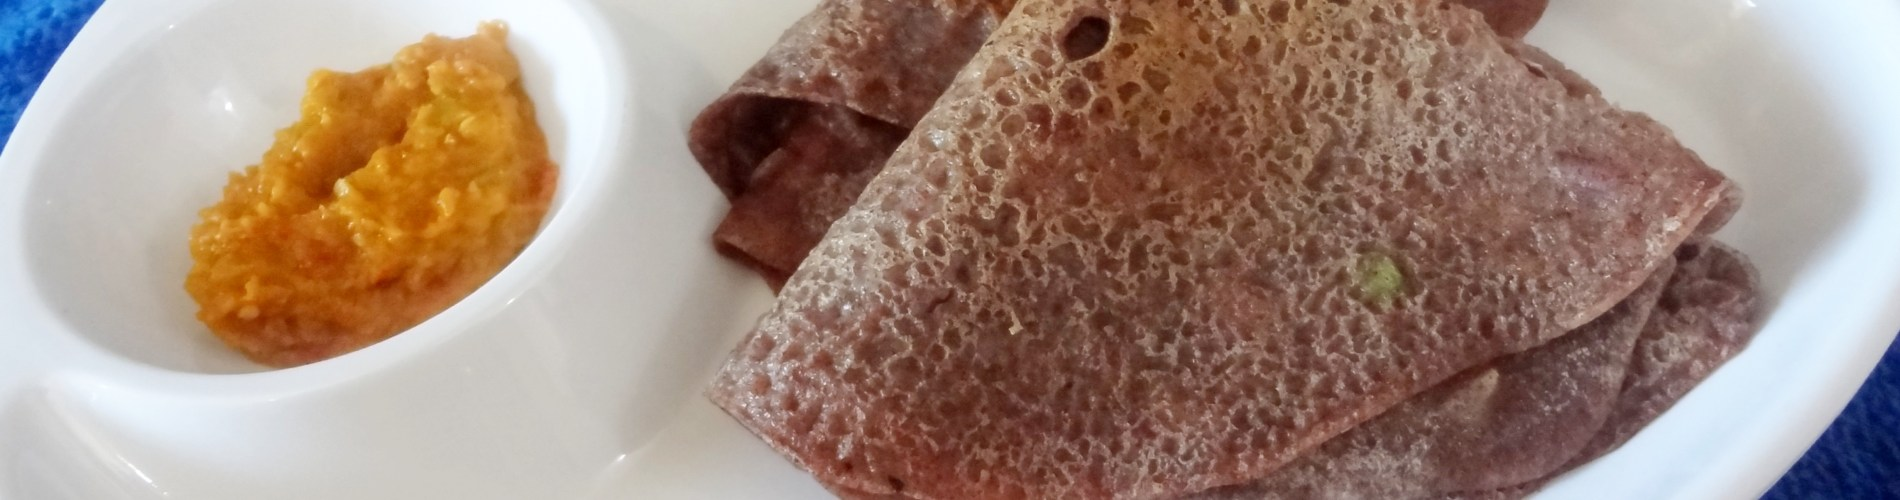 Insatnt ragi wheat dosa